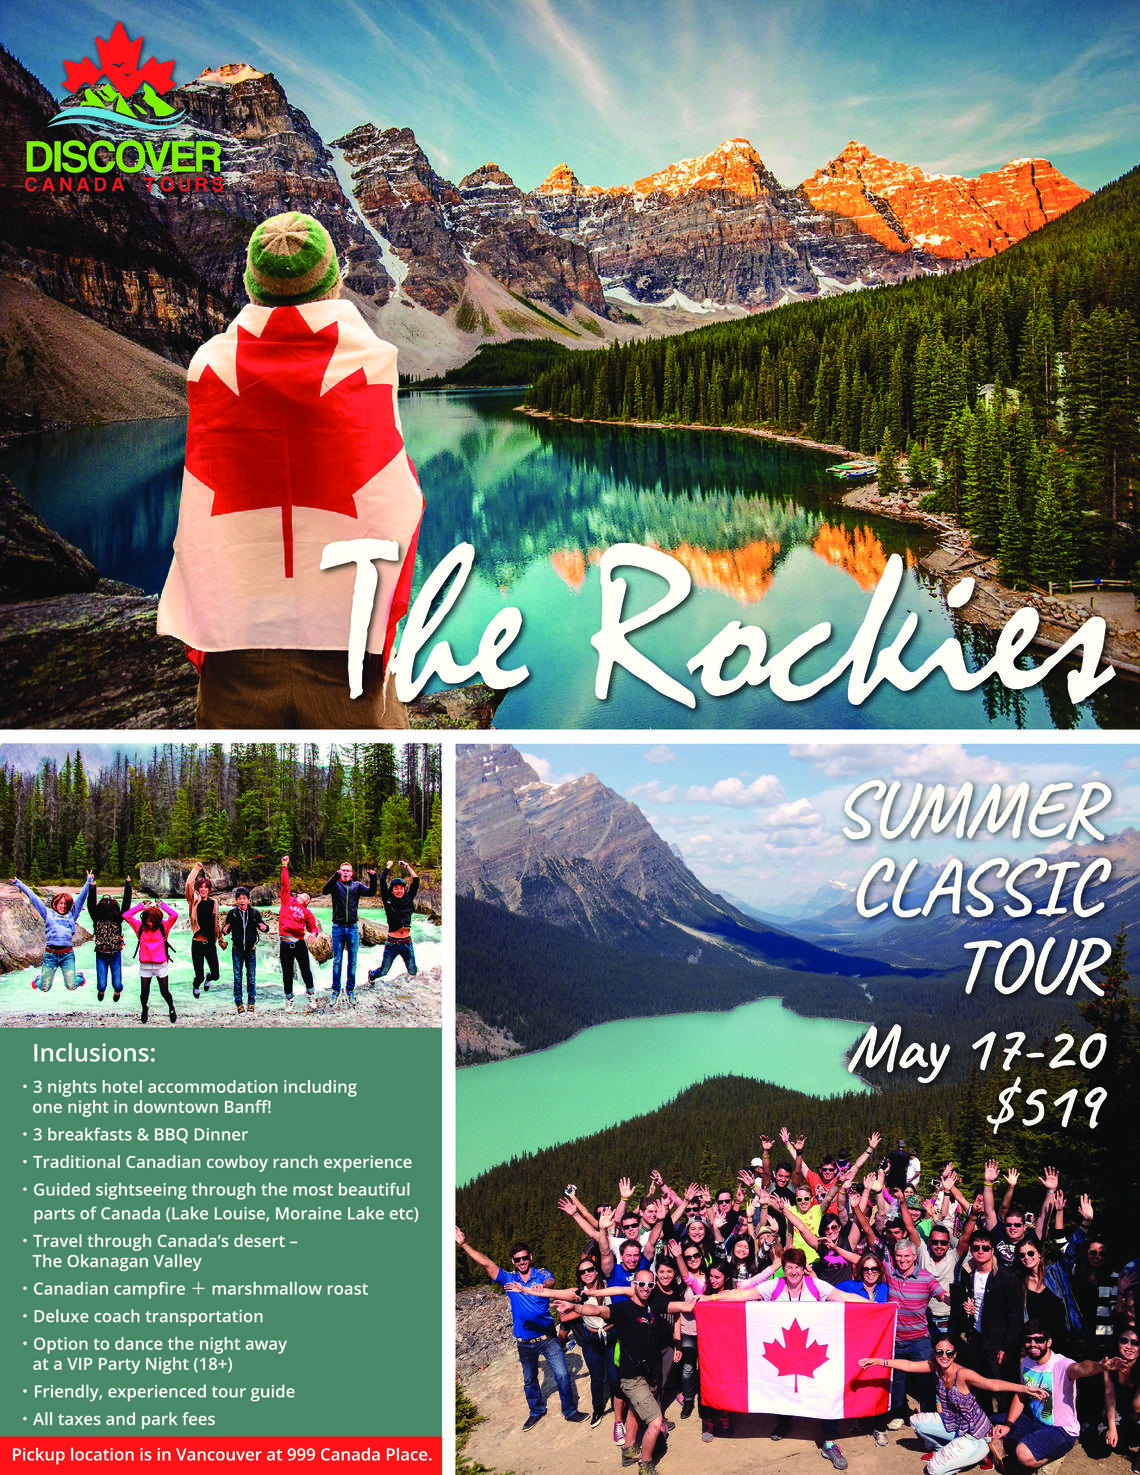 Discover Canada Tours - Canadian Rockies Summer Classic Tour